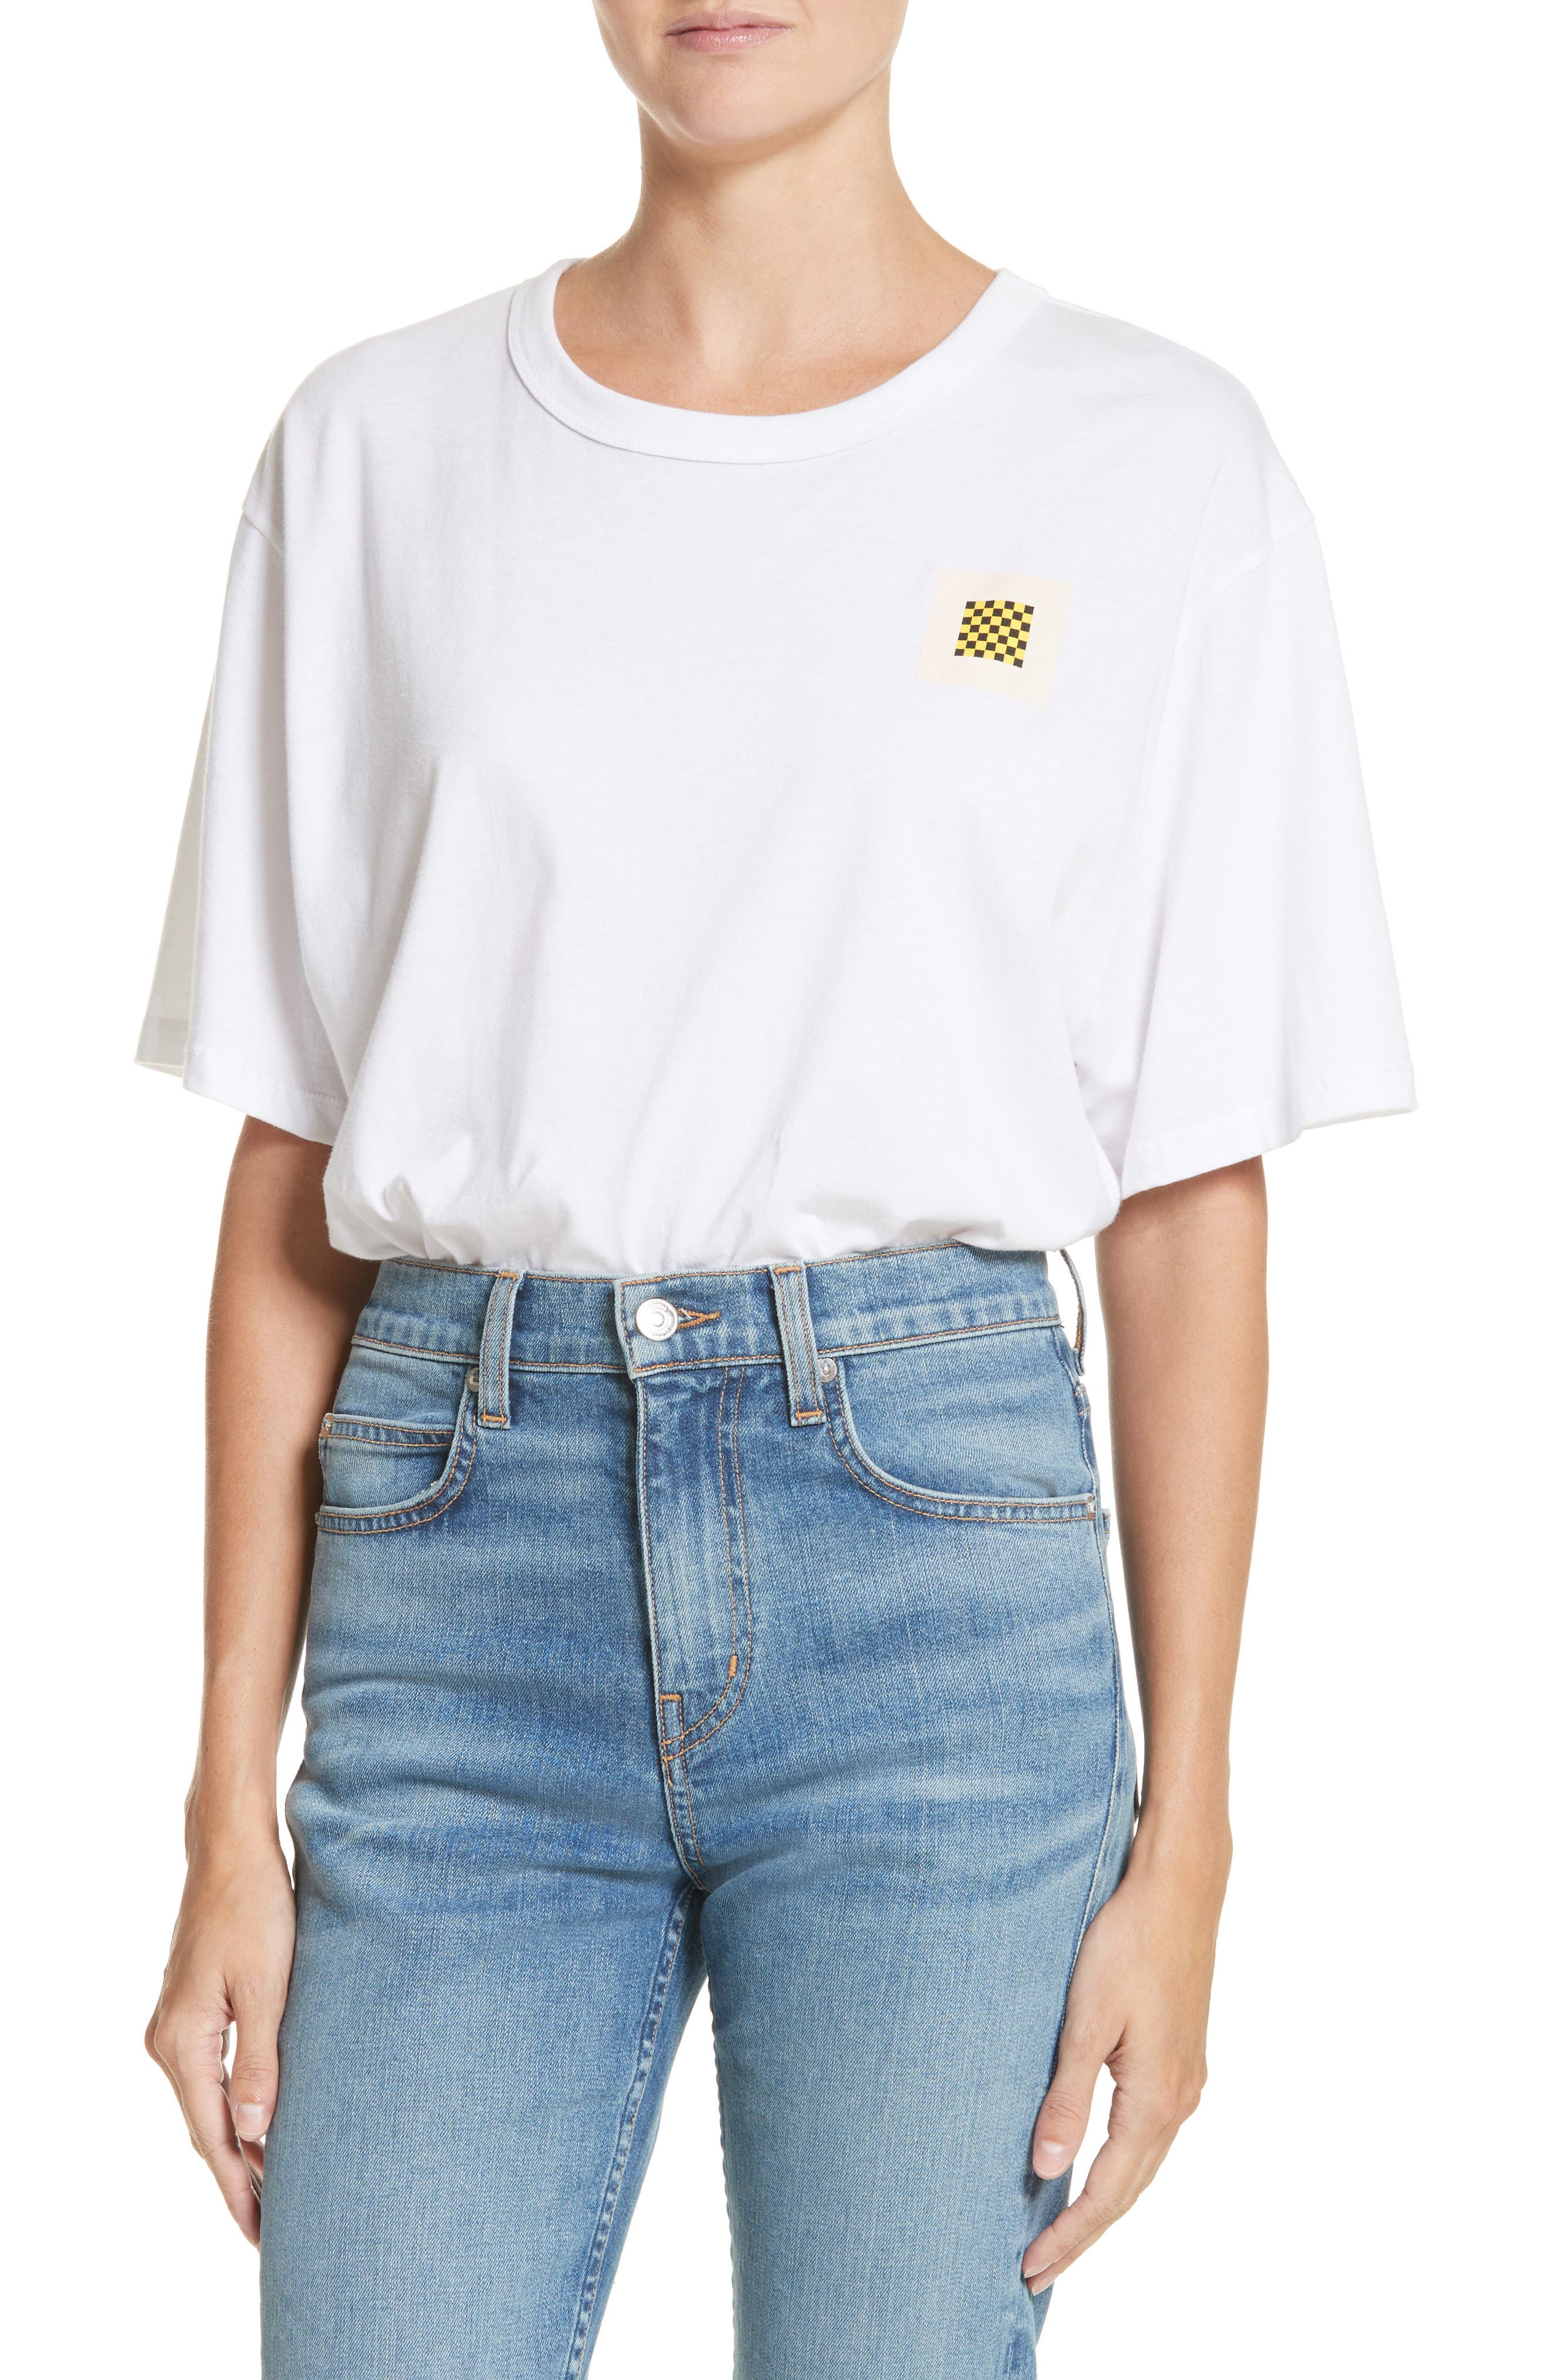 PSWL Graphic Jersey Tee,                         Main,                         color, White